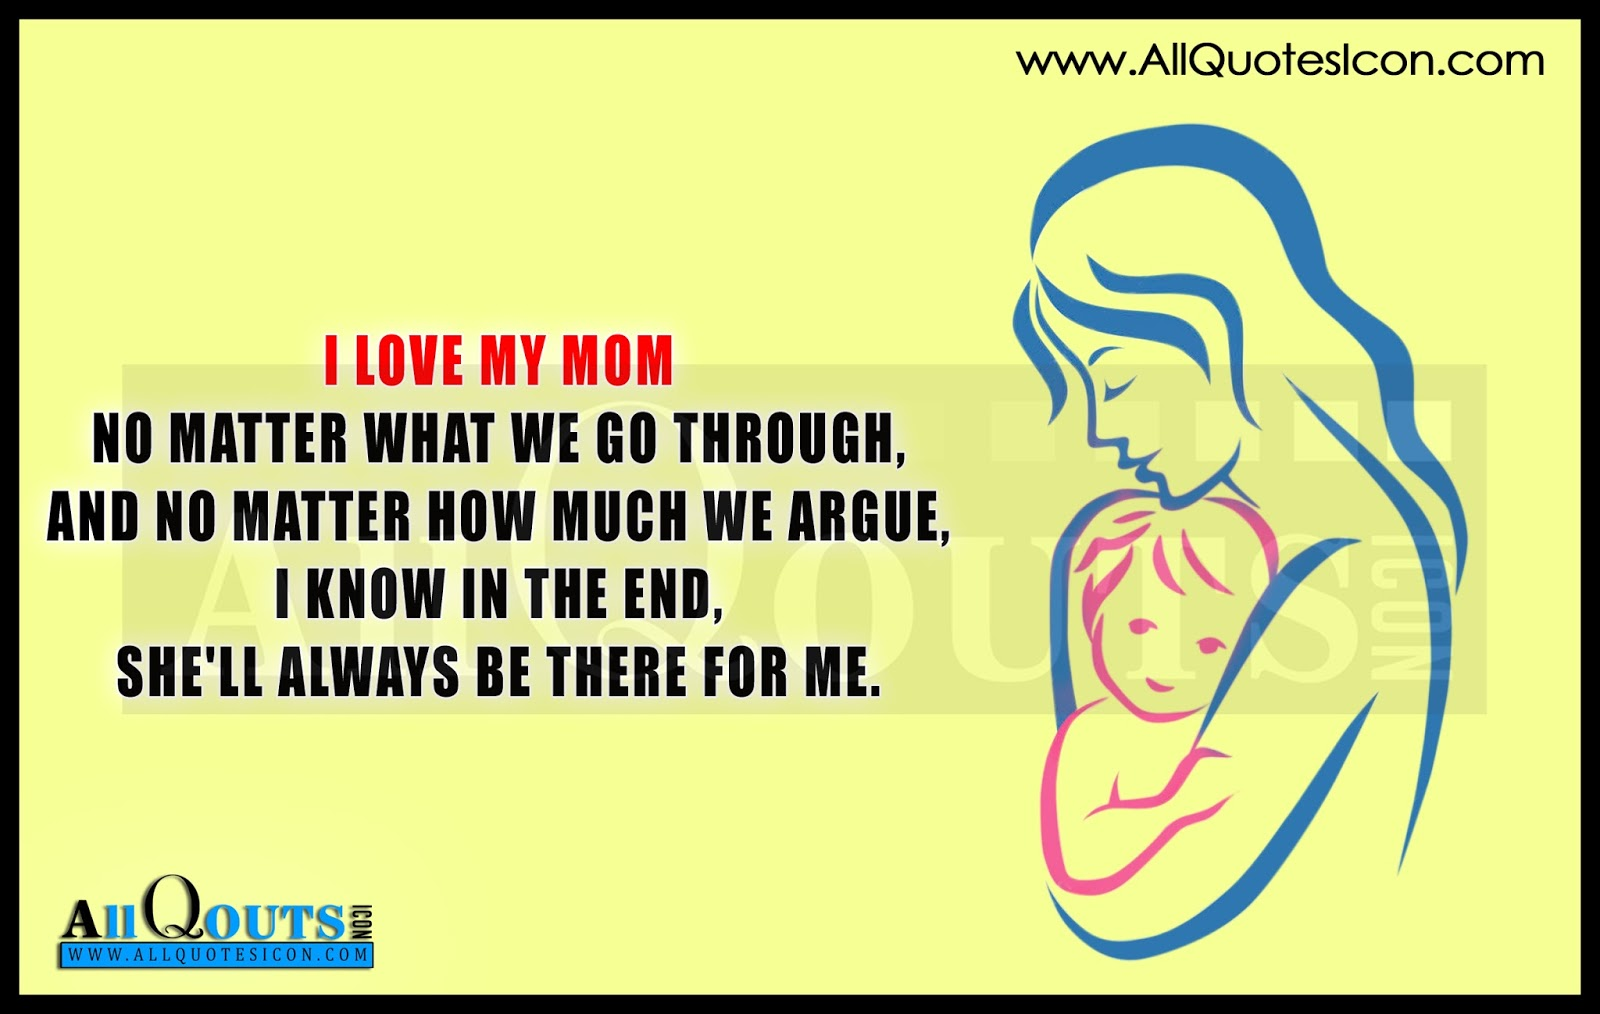 i love you mom images english quotes hd wallpapers best